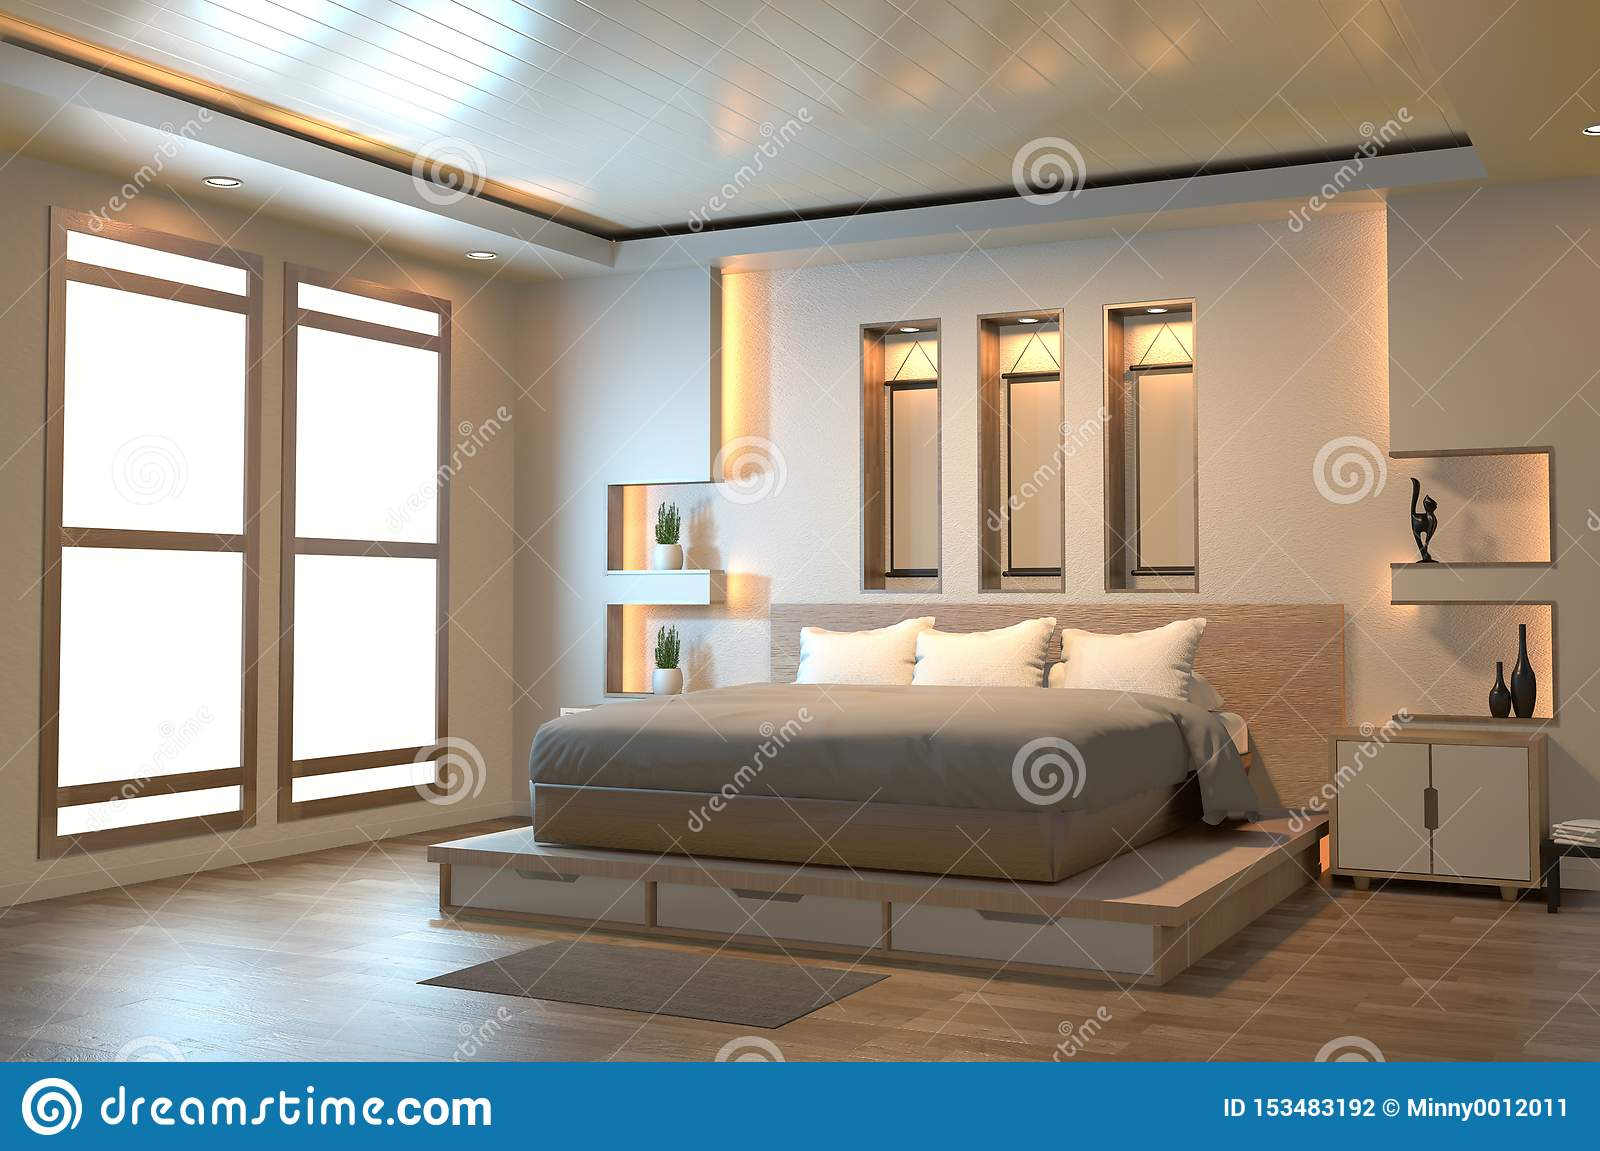 Modern Zen Peaceful Bedroom Japan Style Bedroom With Shelf Wall Design Hidden Light And Decoration Japanese Style 3d Rendering Stock Illustration Illustration Of Living Modern 153483192